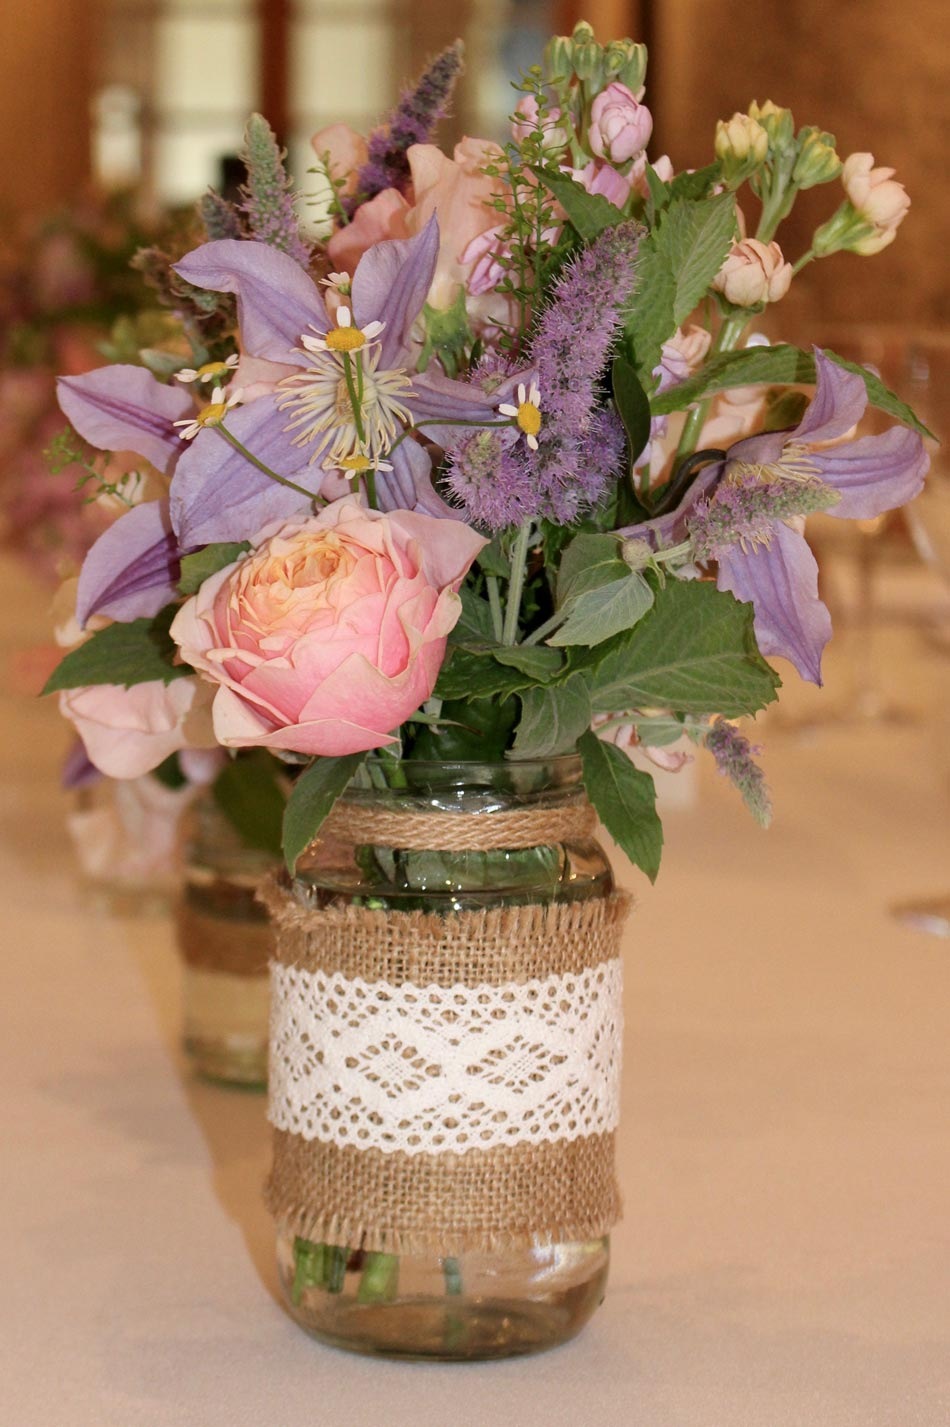 Purple flowers in a laced vase